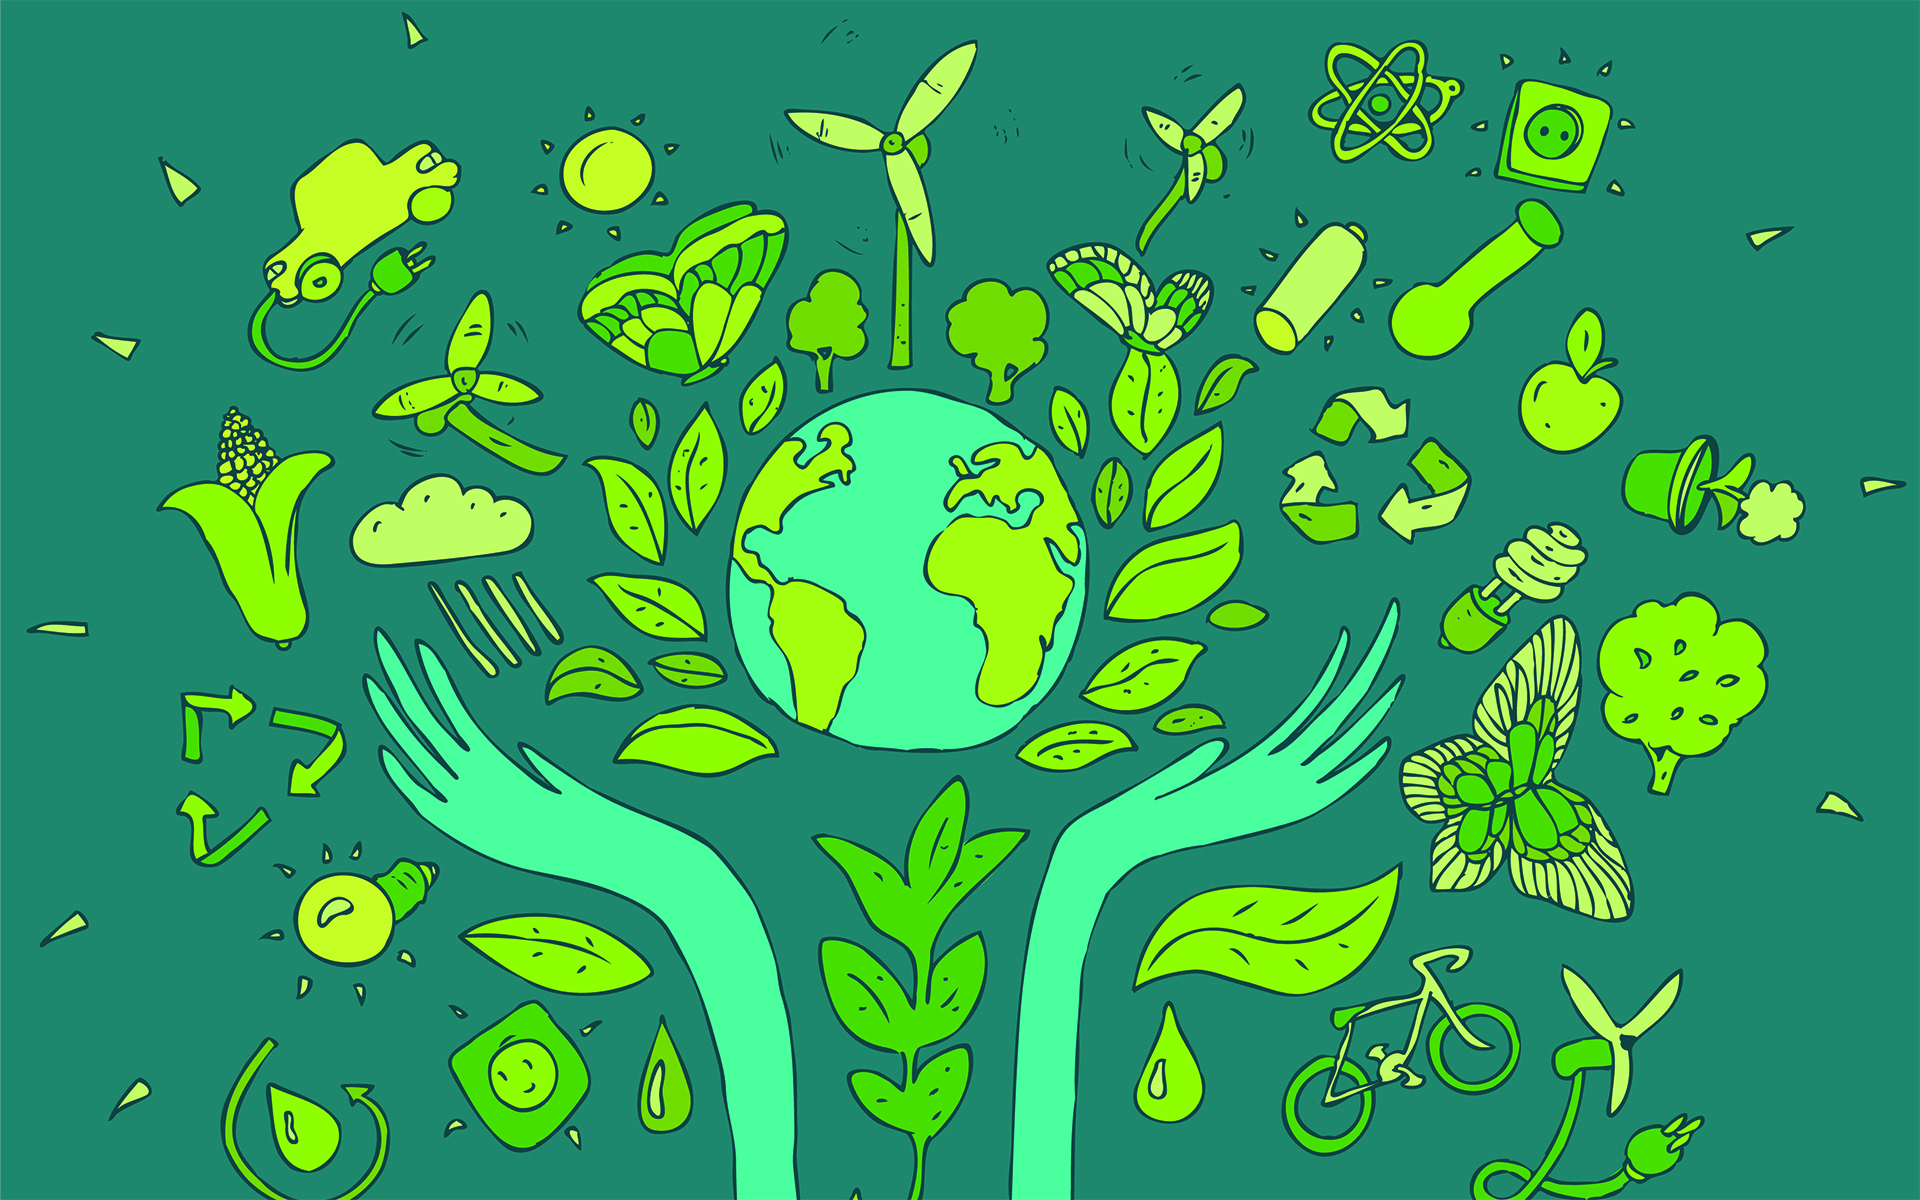 Two Simple Mindfulness Practices to Help You Connect with Nature - Eco Friendly concept, save earth concept, vector illustration